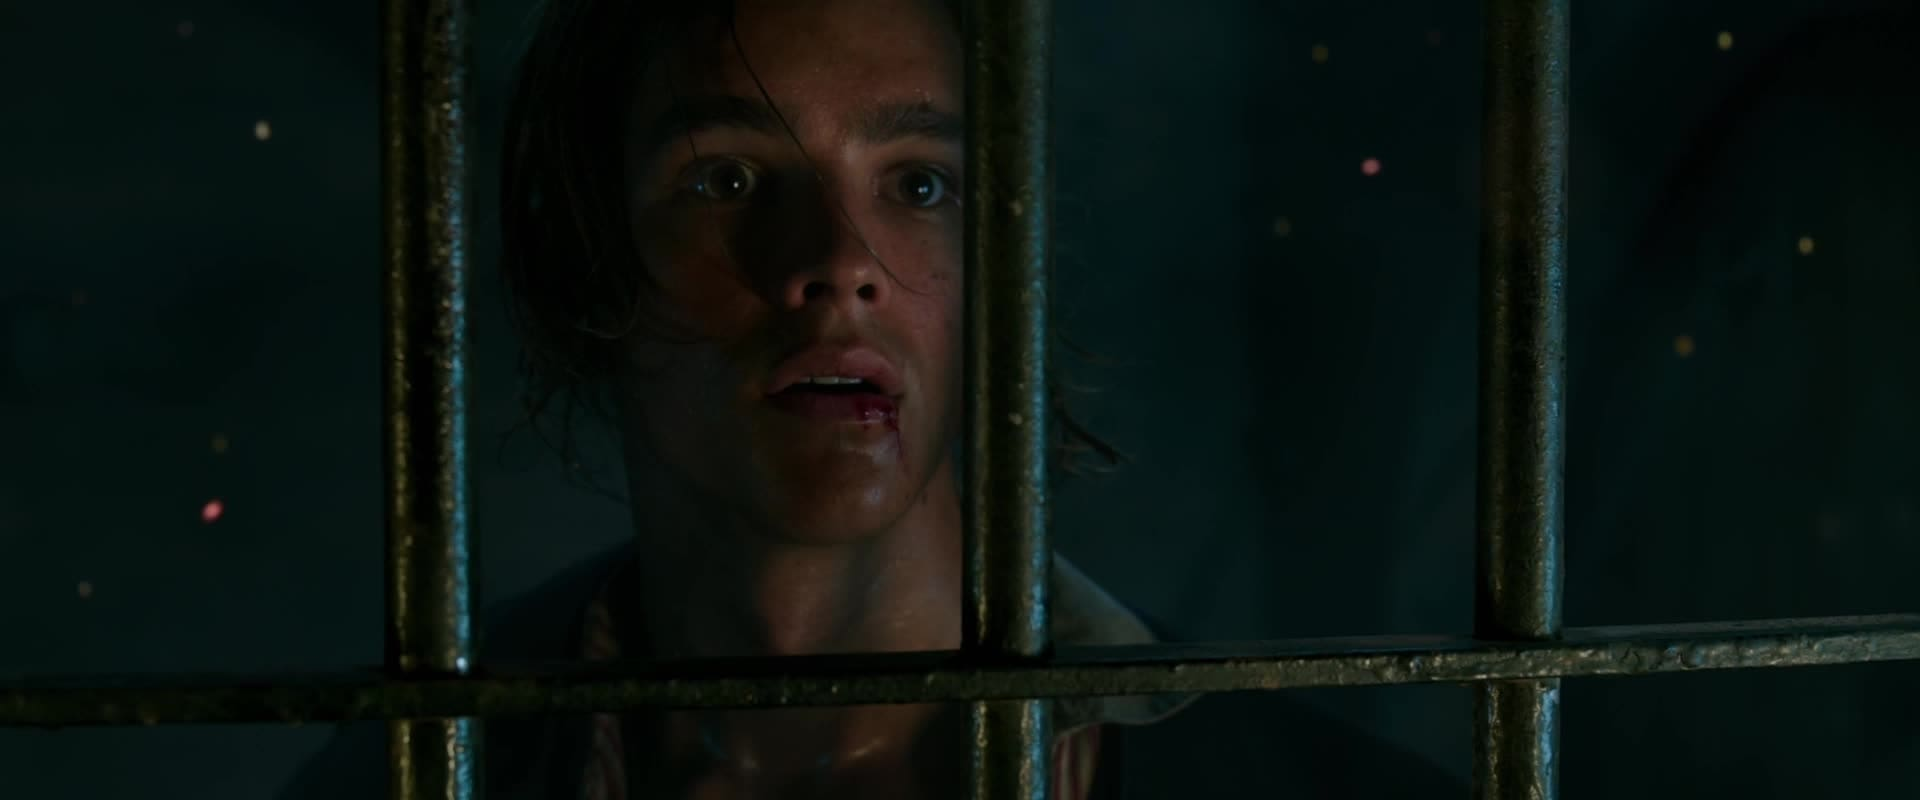 Pirates of the Caribbean: Salazar's Revenge - Teaser Trailer